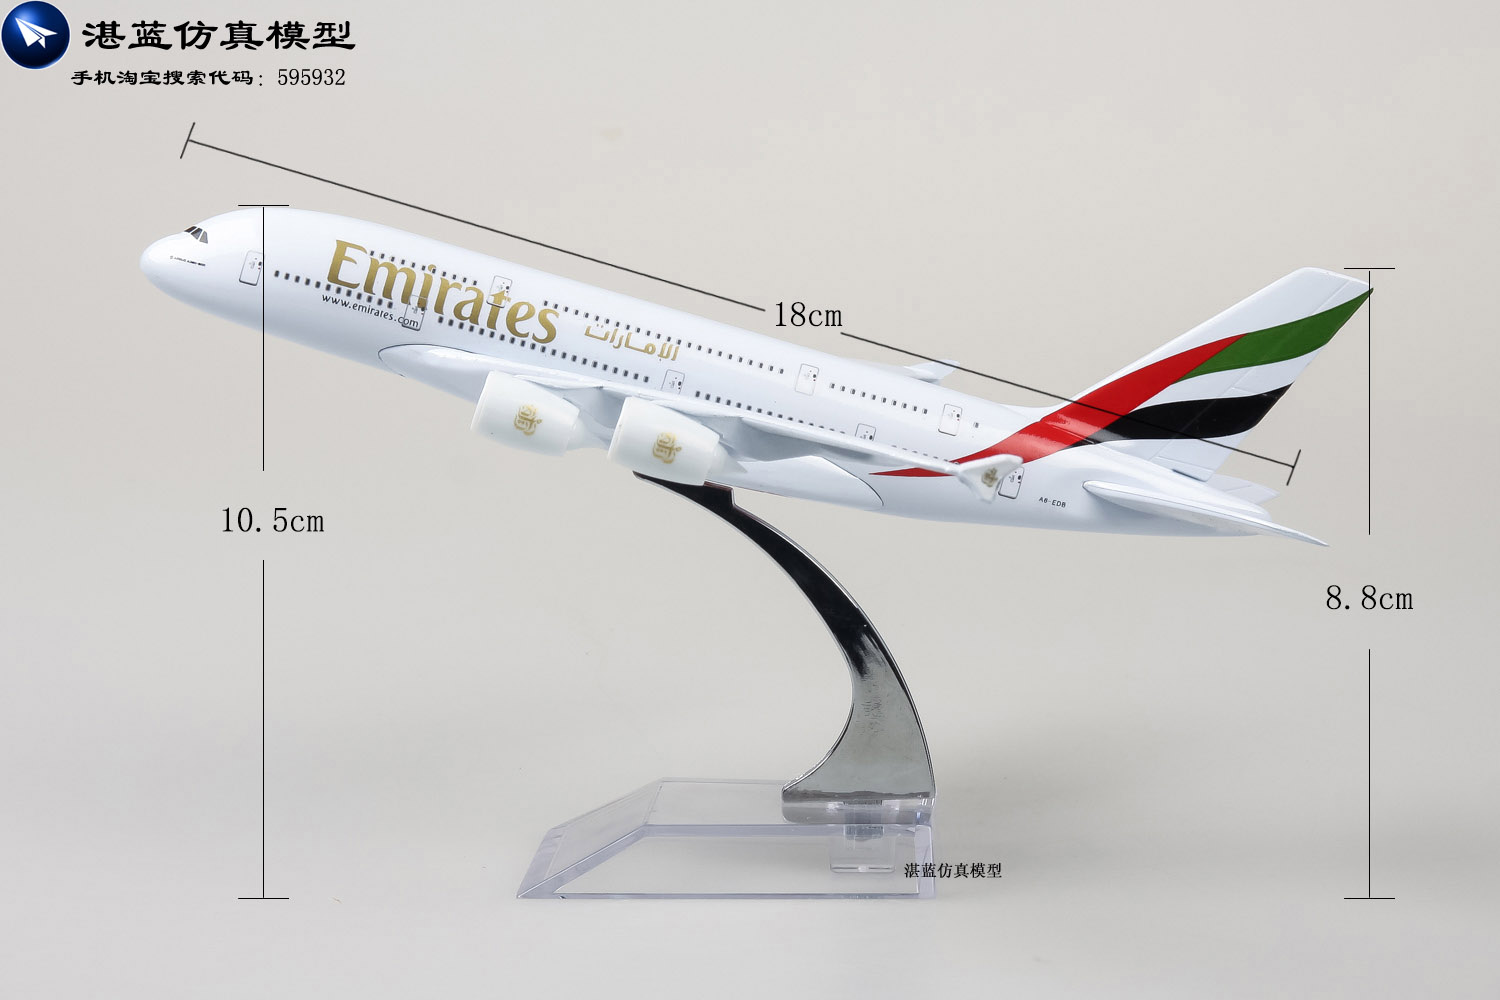 A380 Emirates Air Plane Model Stand 1:400 Diecast Aircraft Airplane Toys Kids